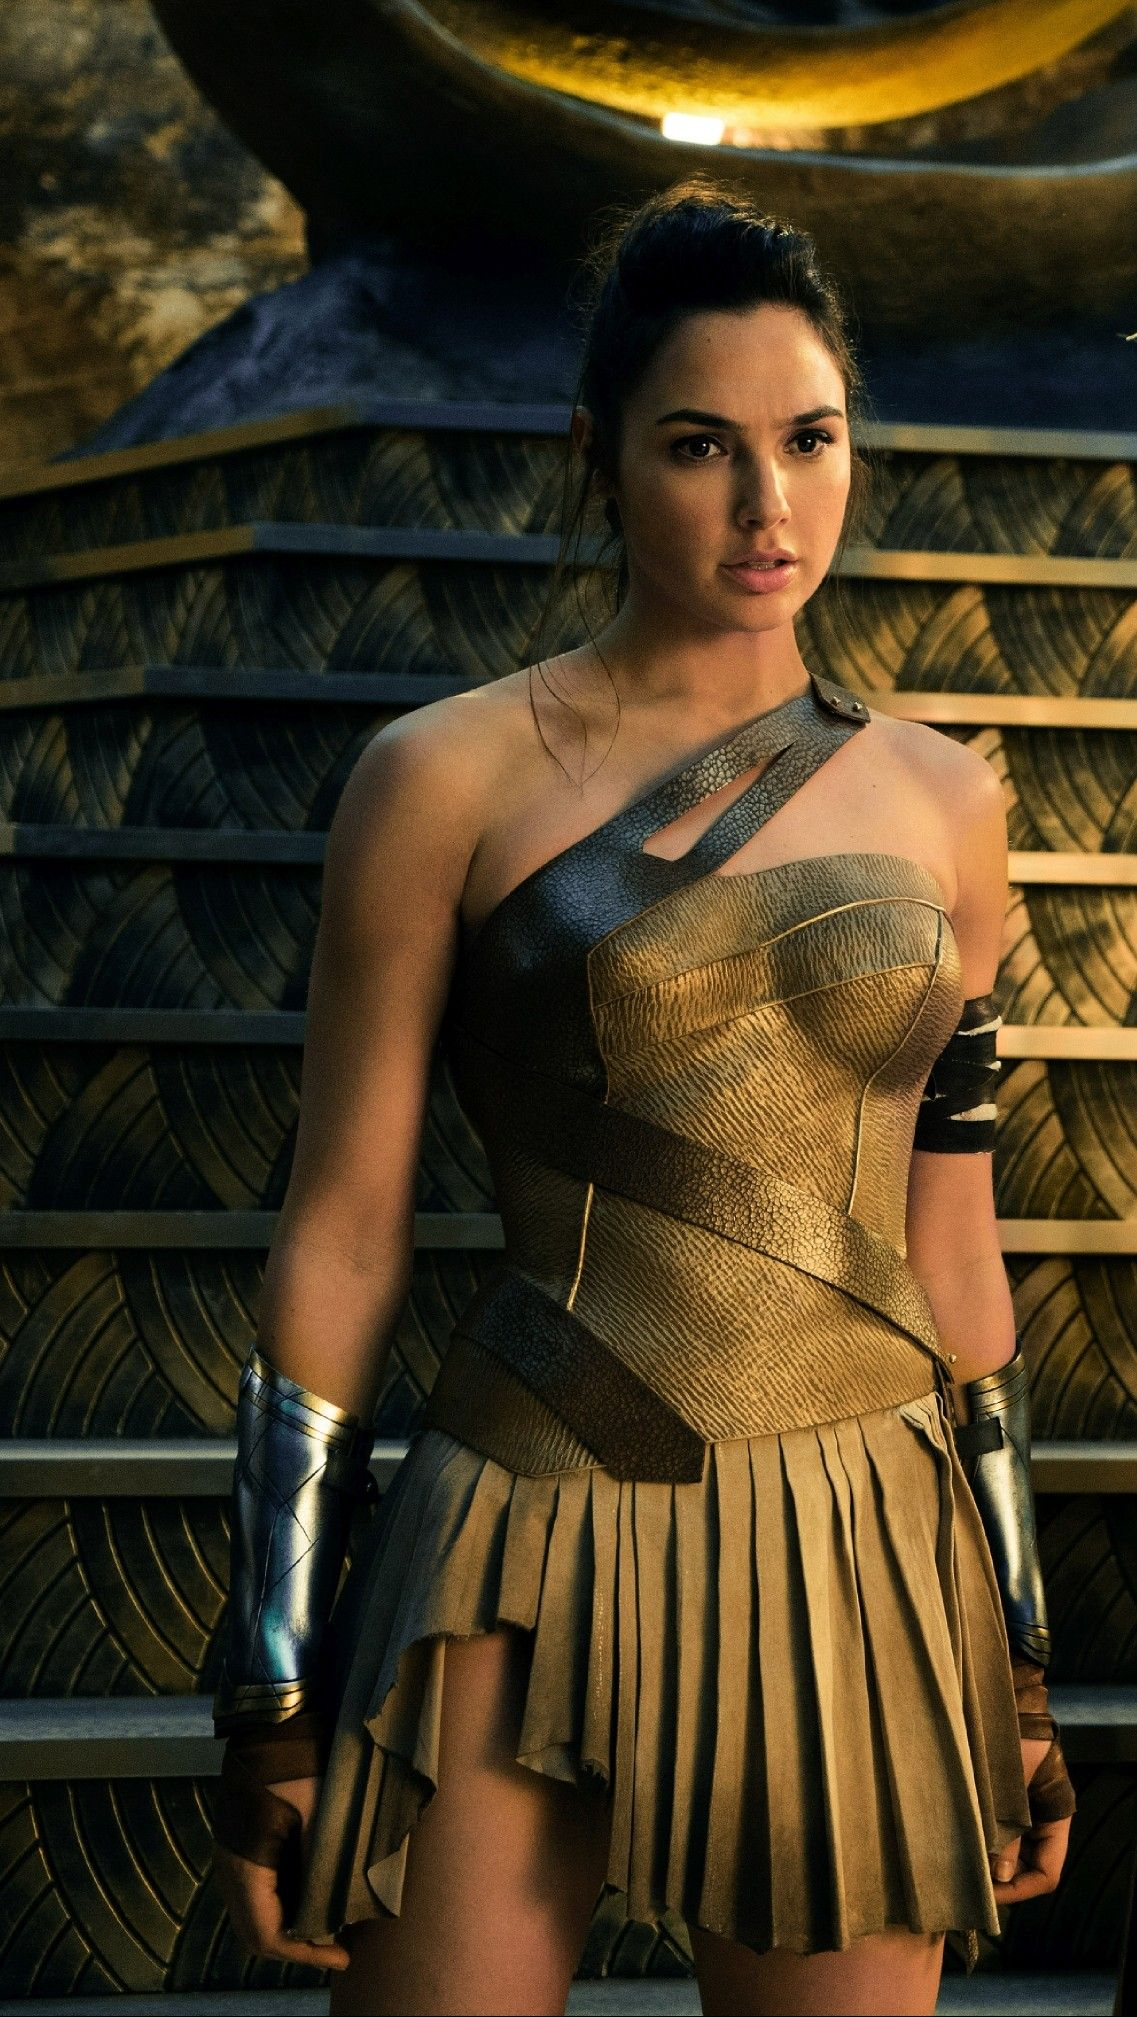 Production has started on Wonder Woman 1984 - and heres